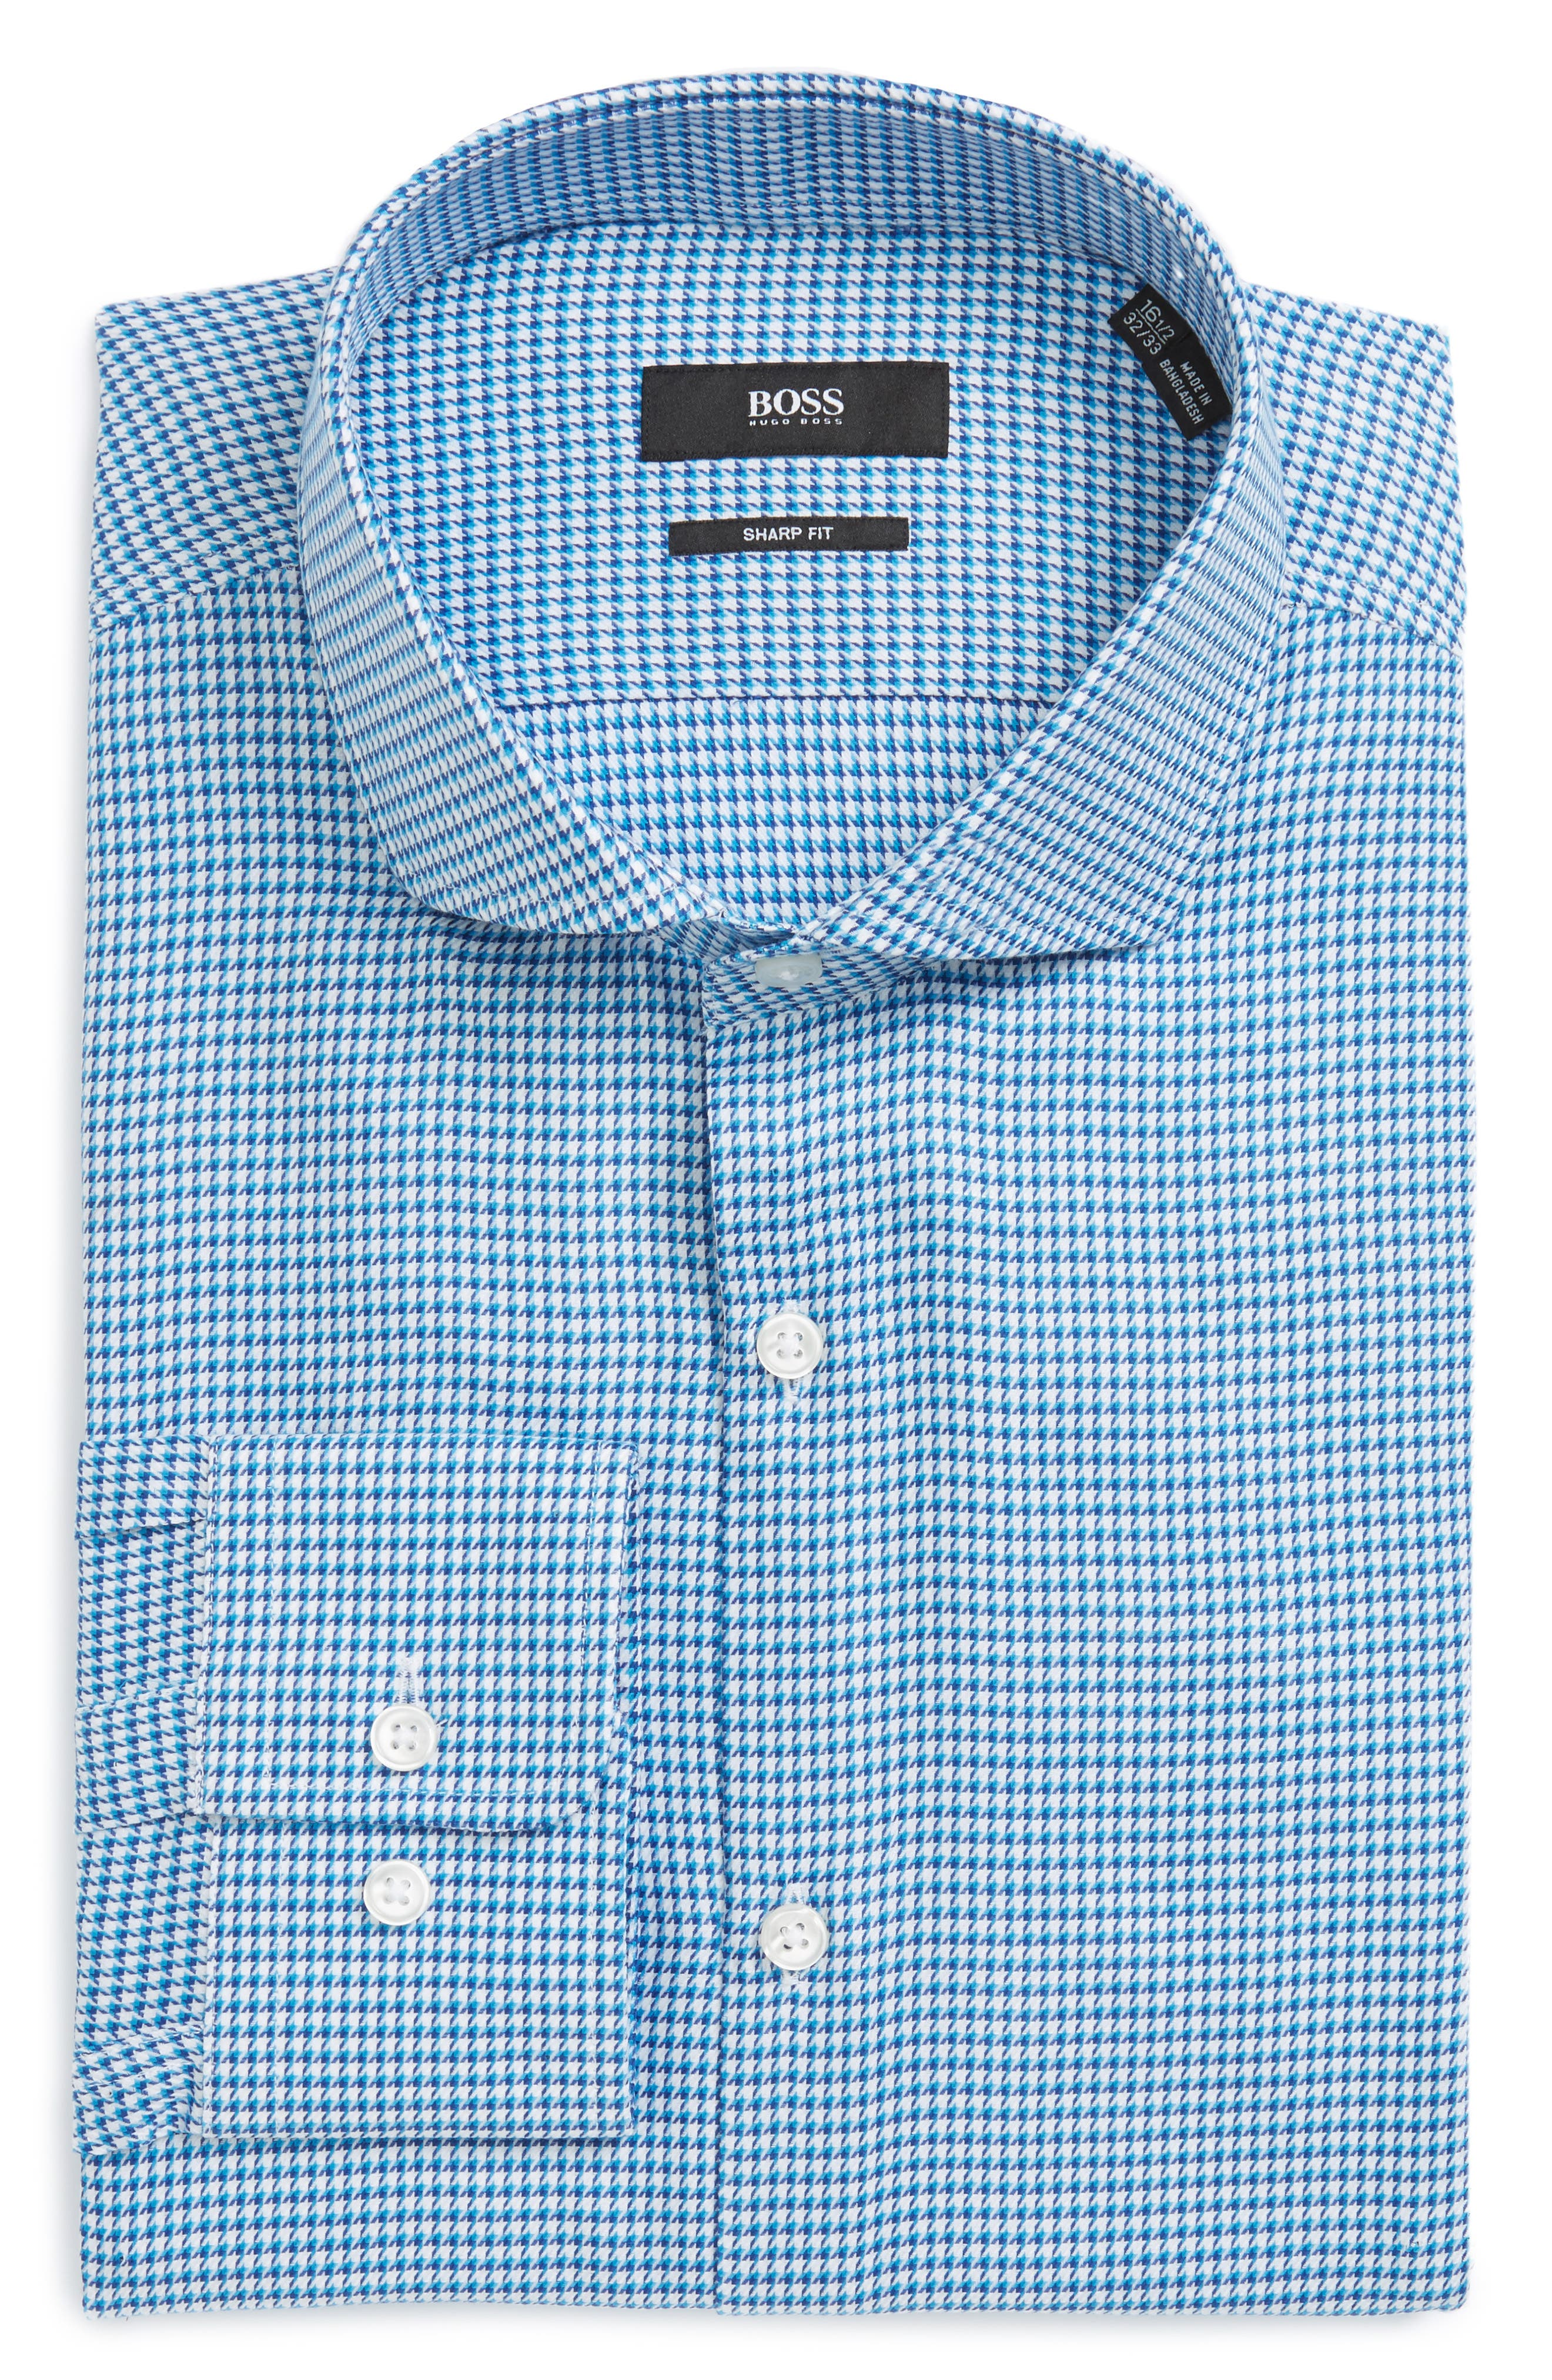 Mark Sharp Fit Houndstooth Dress Shirt,                             Main thumbnail 1, color,                             Turquoise/ Aqua